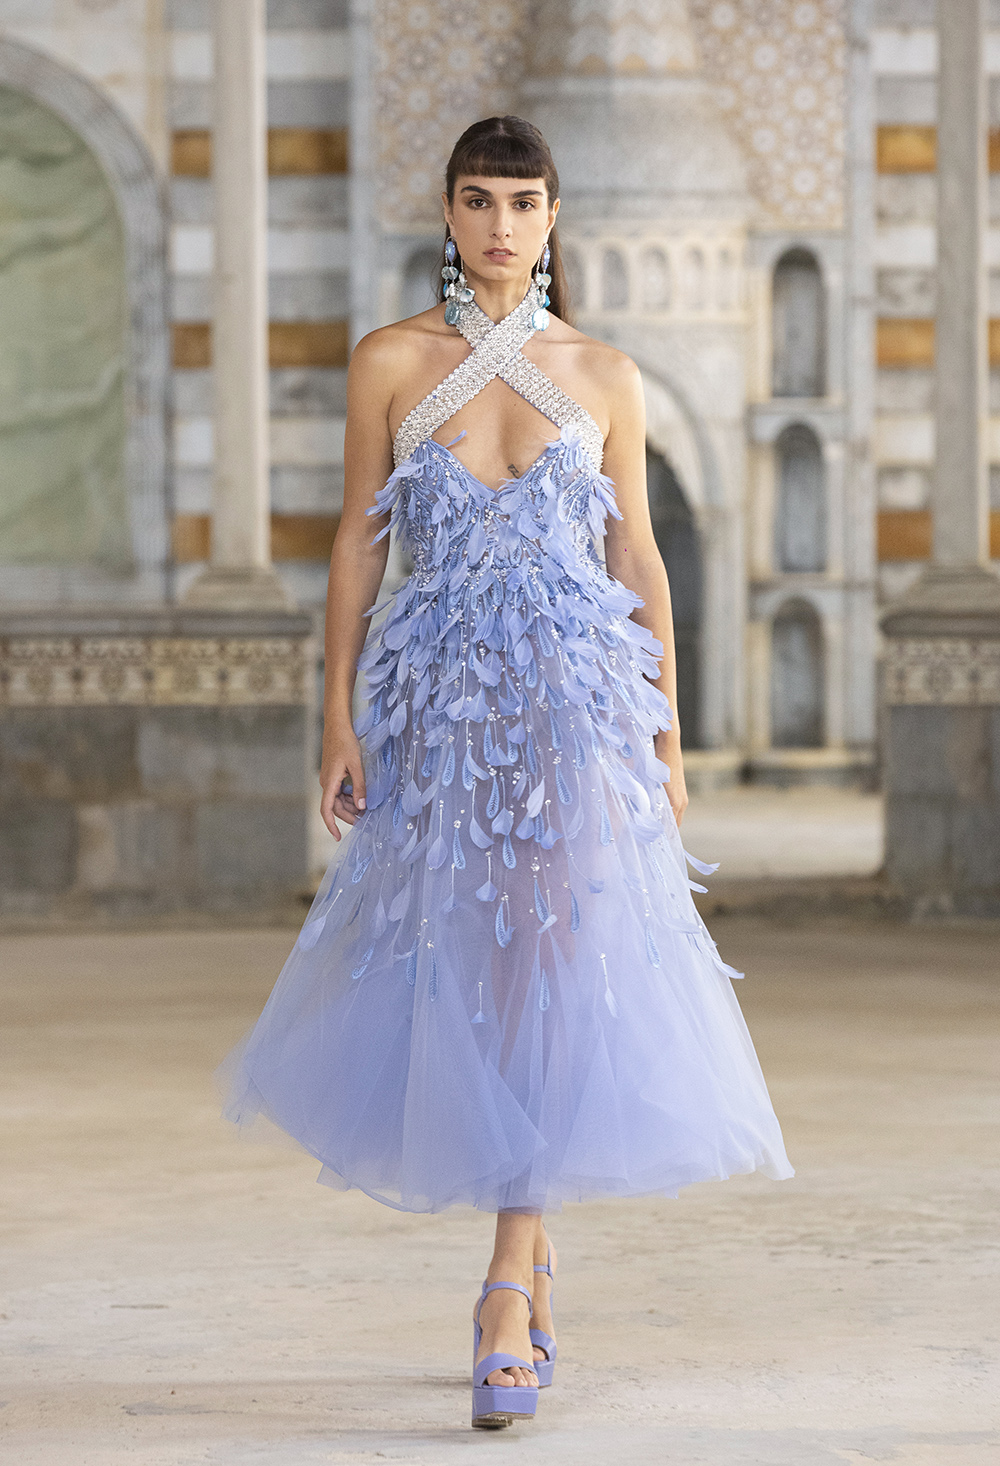 Floral midi dress details from Georges Hobeika's Spring 2022 Collection I DreaminLace.com #fashionstyle